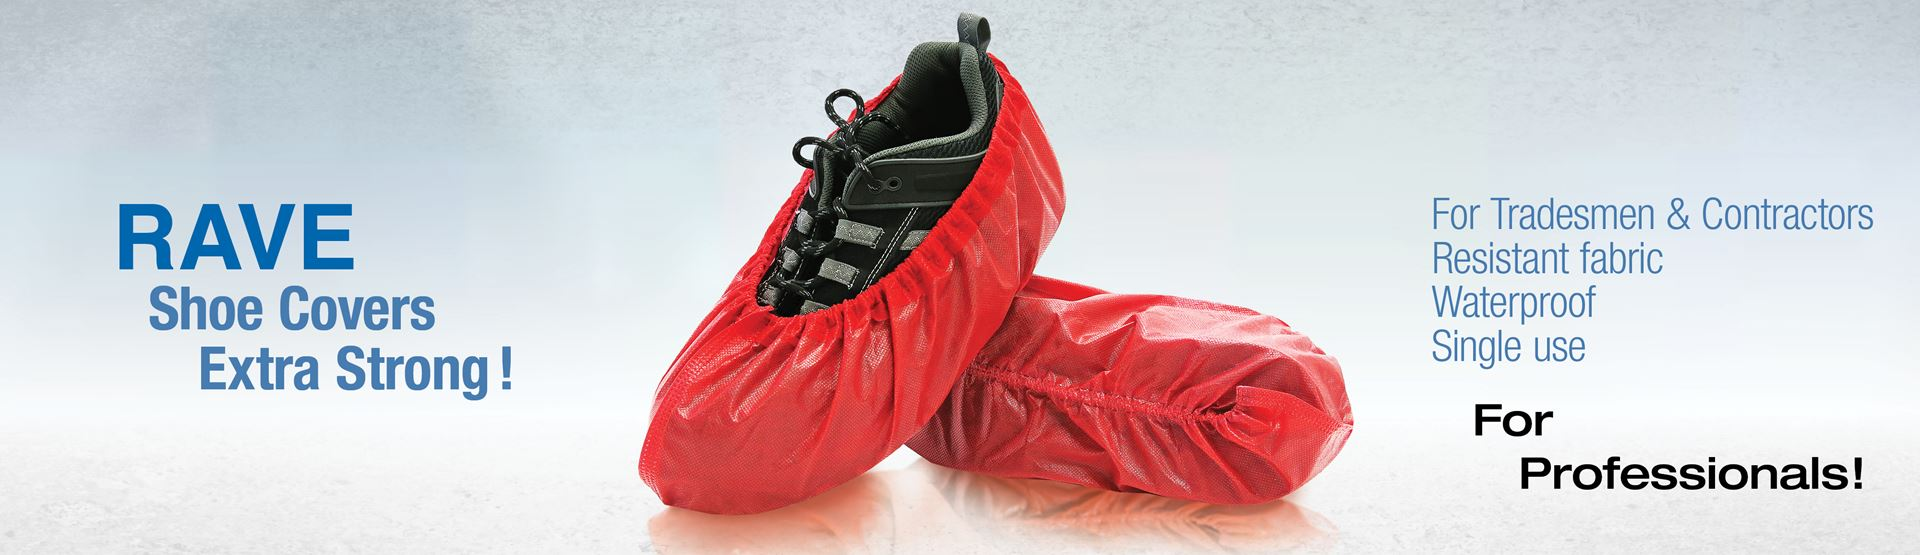 BlueMed, RAVE Shoe Covers